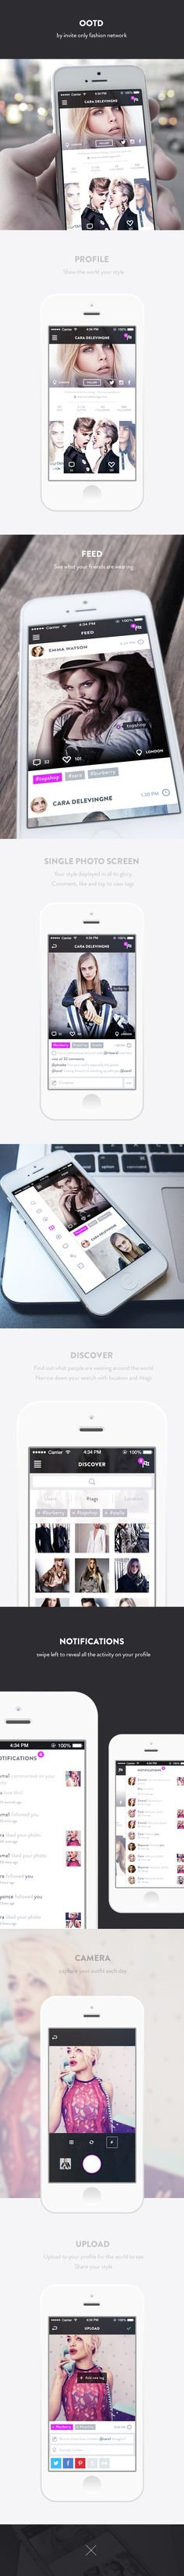 Outfit of the Day Fashion App by Ben Dunn, via Behance